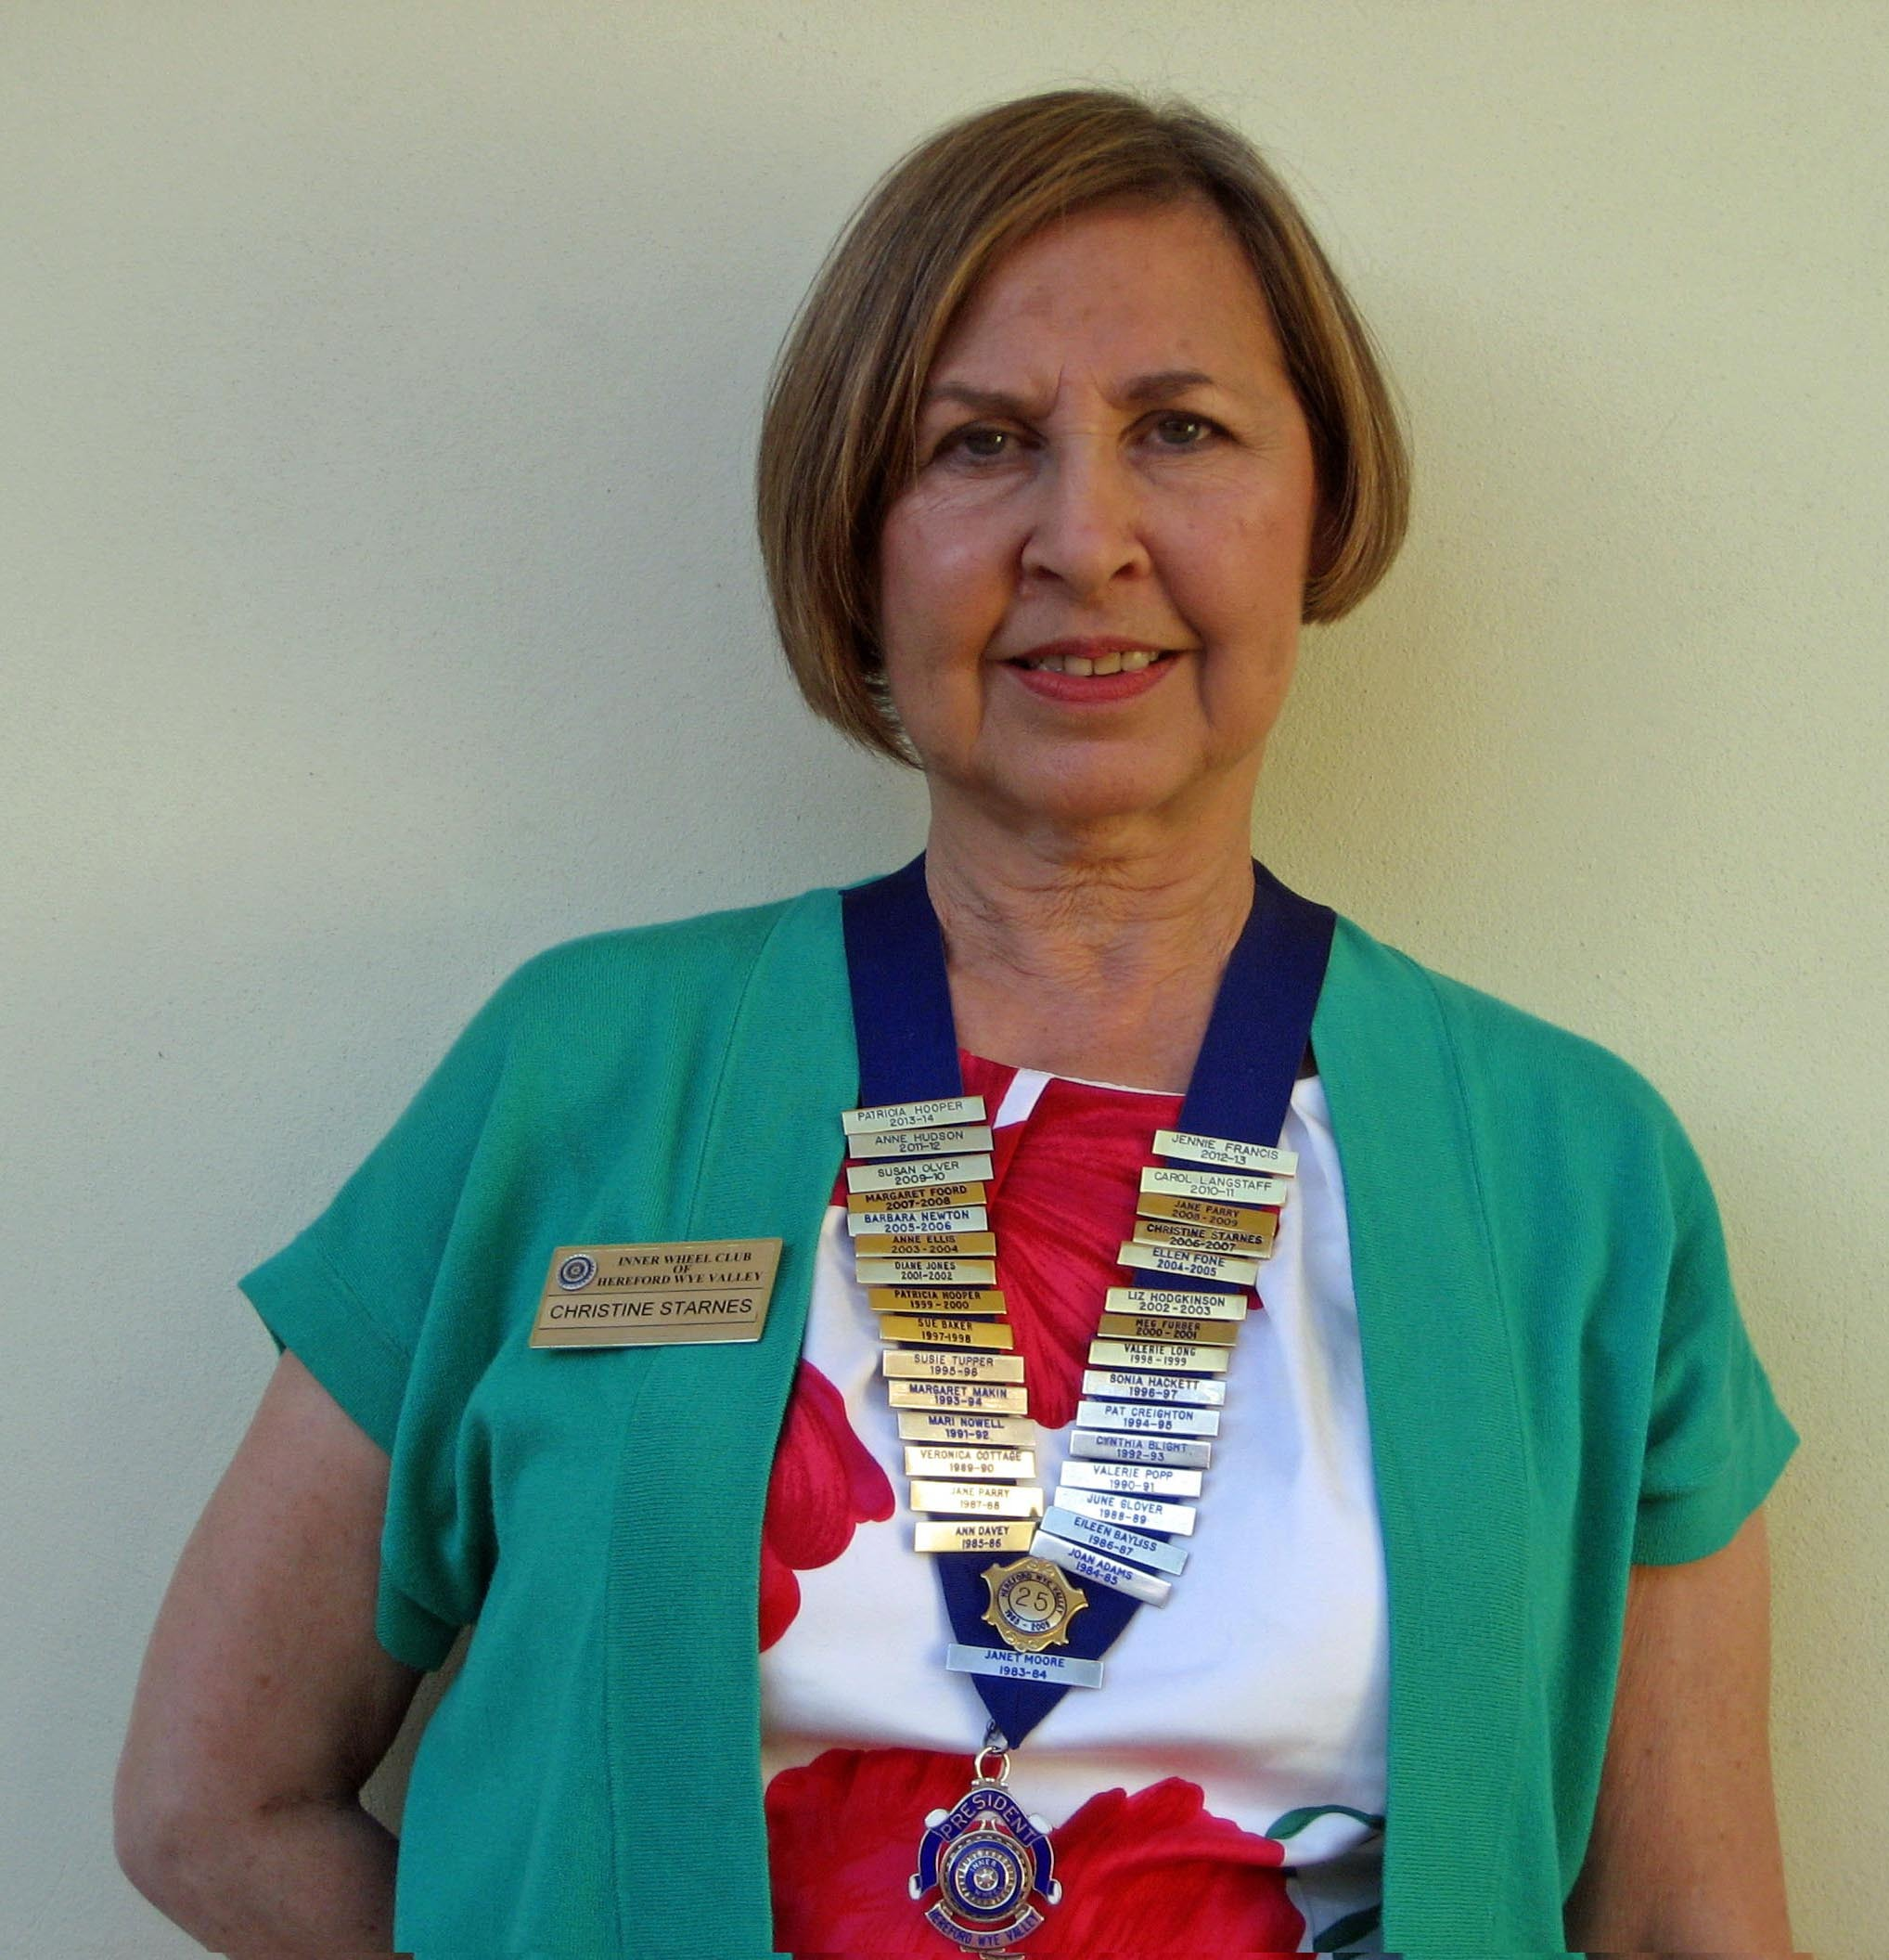 Christine Starnes is the new president of the Inner Wheel Club of Hereford Wye Valley.